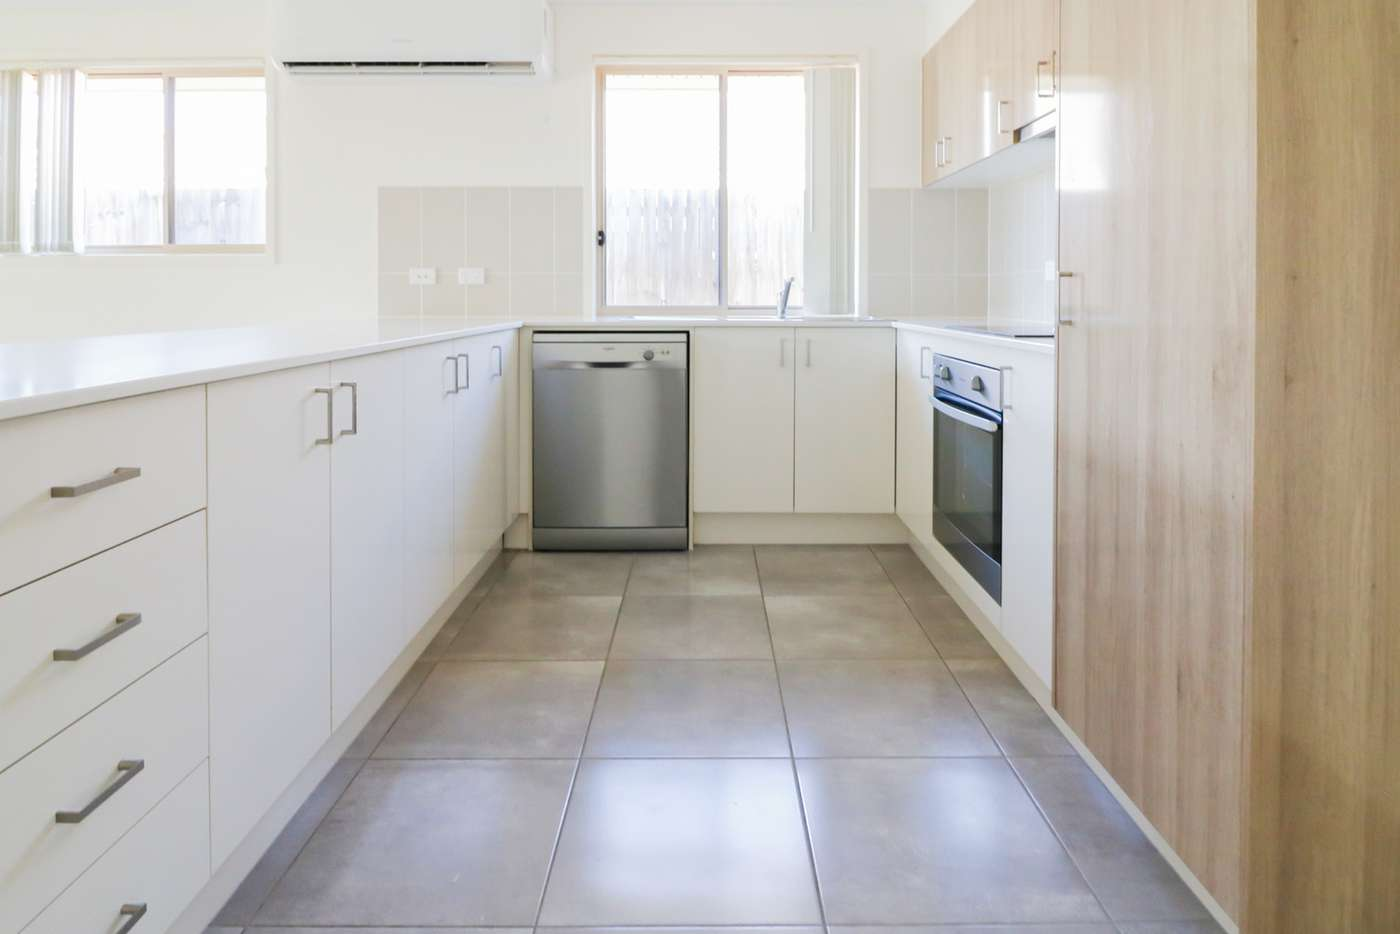 Sixth view of Homely house listing, 75 William Boulevard, Pimpama QLD 4209